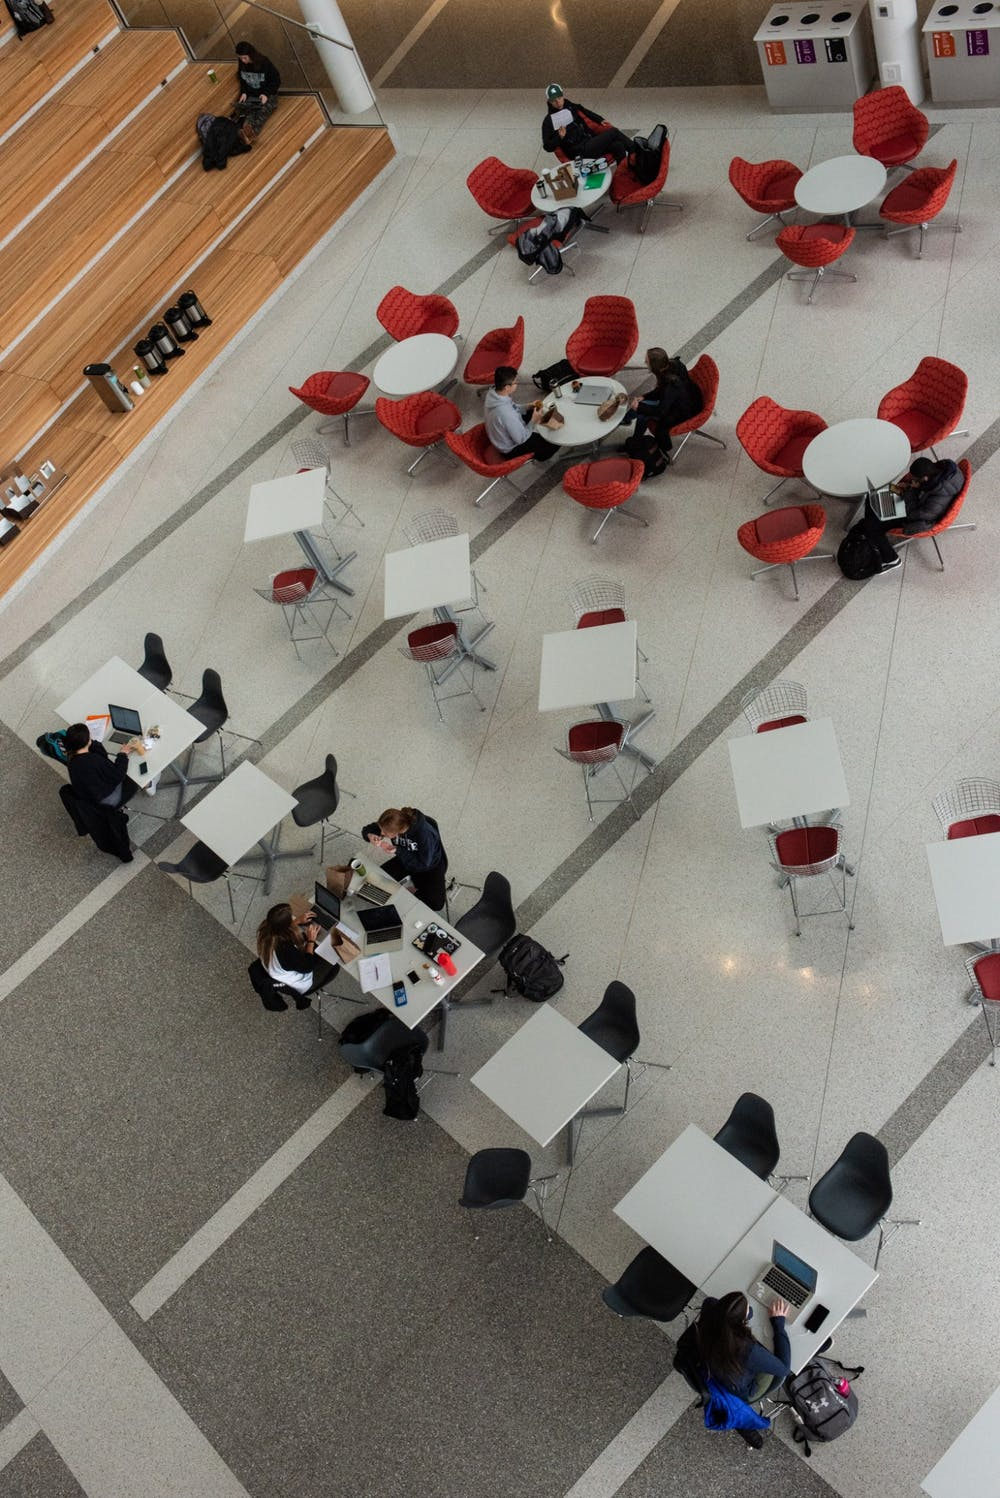 <p>Students continue to study in the Eppley Center after an email is released notifying students that classes after noon have been canceled on March 11, 2020.</p>